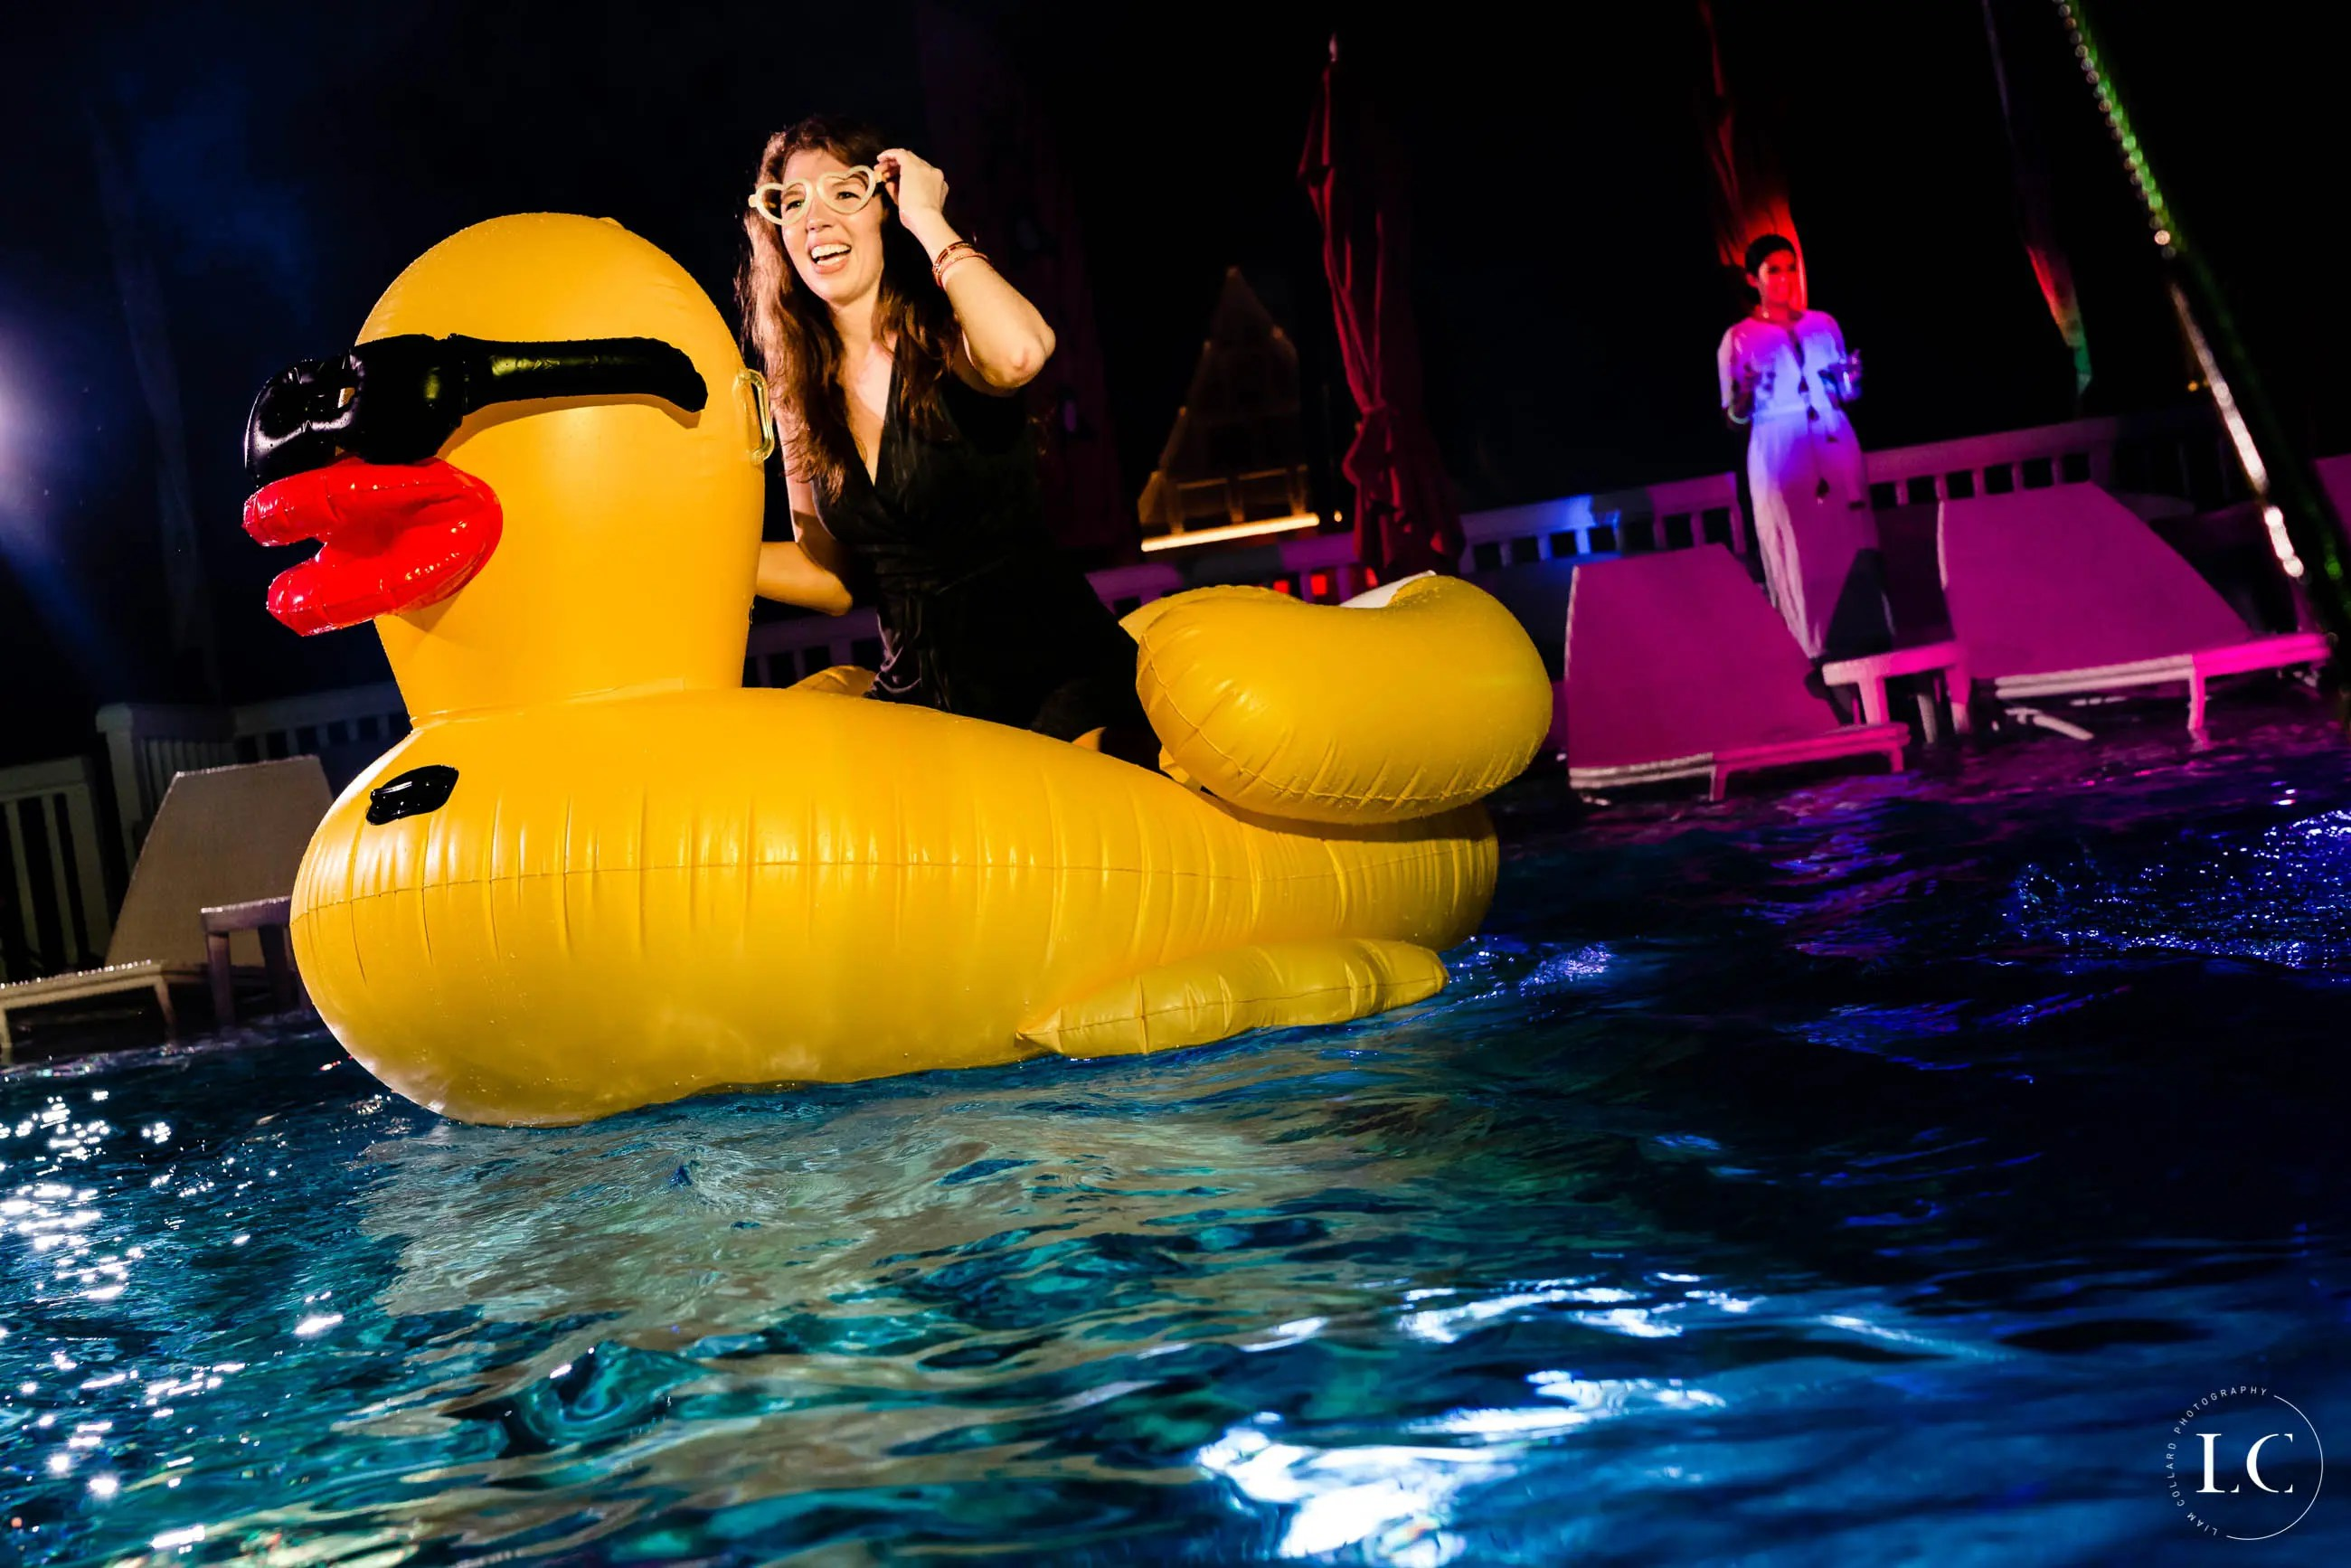 Woman on big rubber duck in a pool